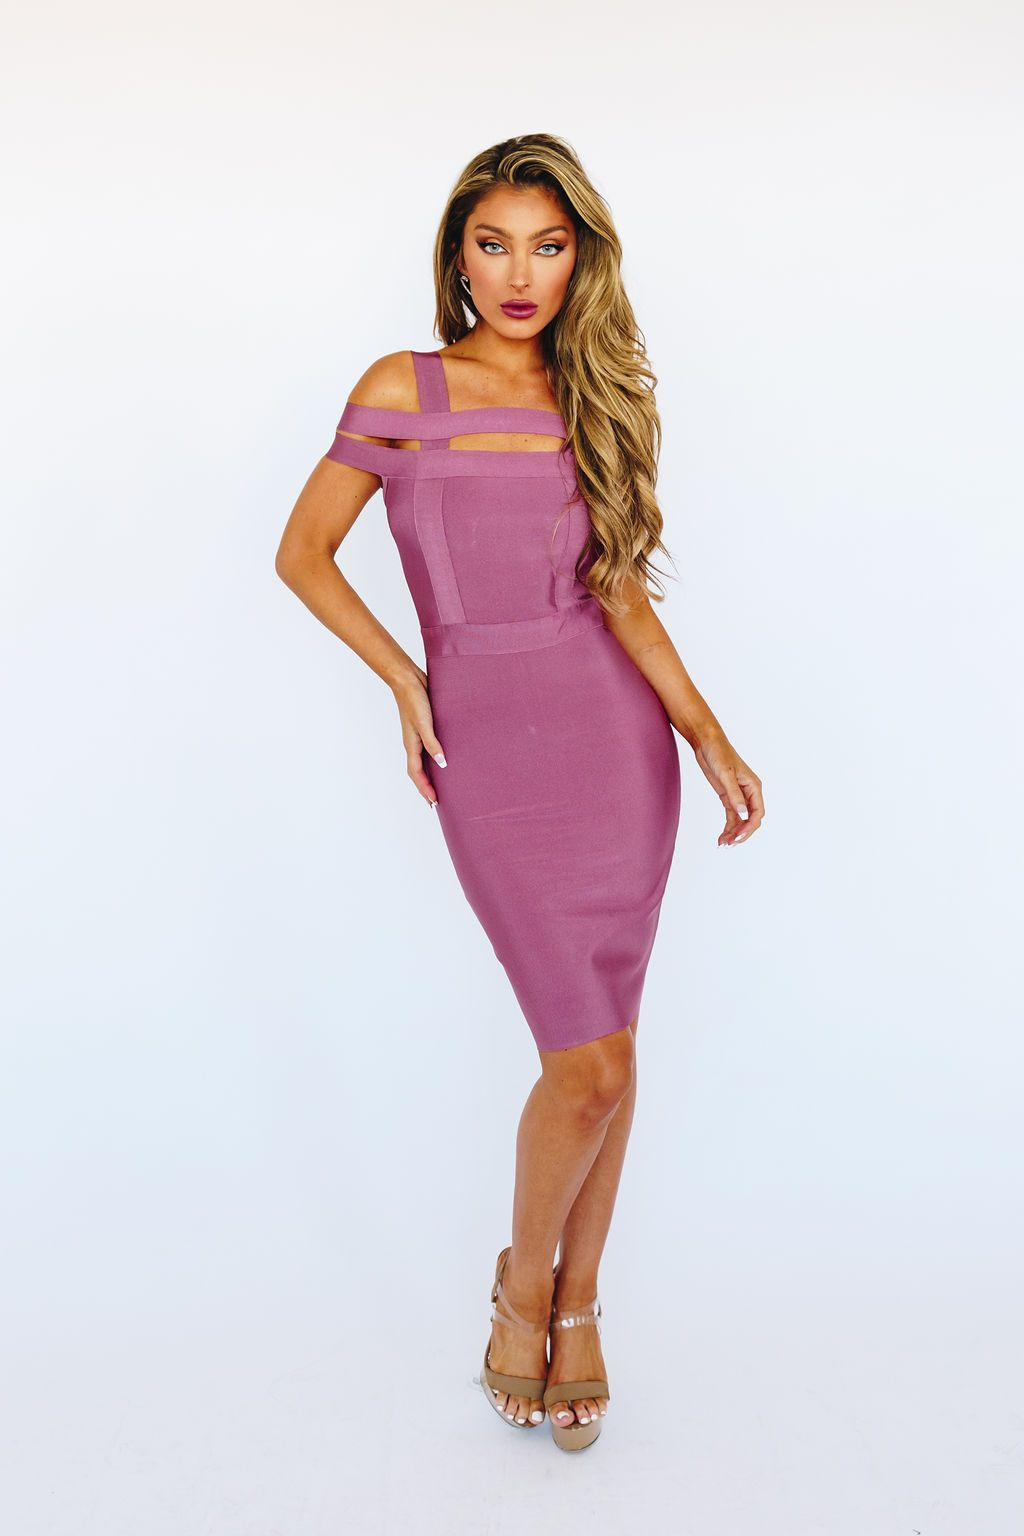 Style K5181 Wow Pink Size 2 Sorority Formal Tall Height Wedding Guest Cocktail Dress on Queenly